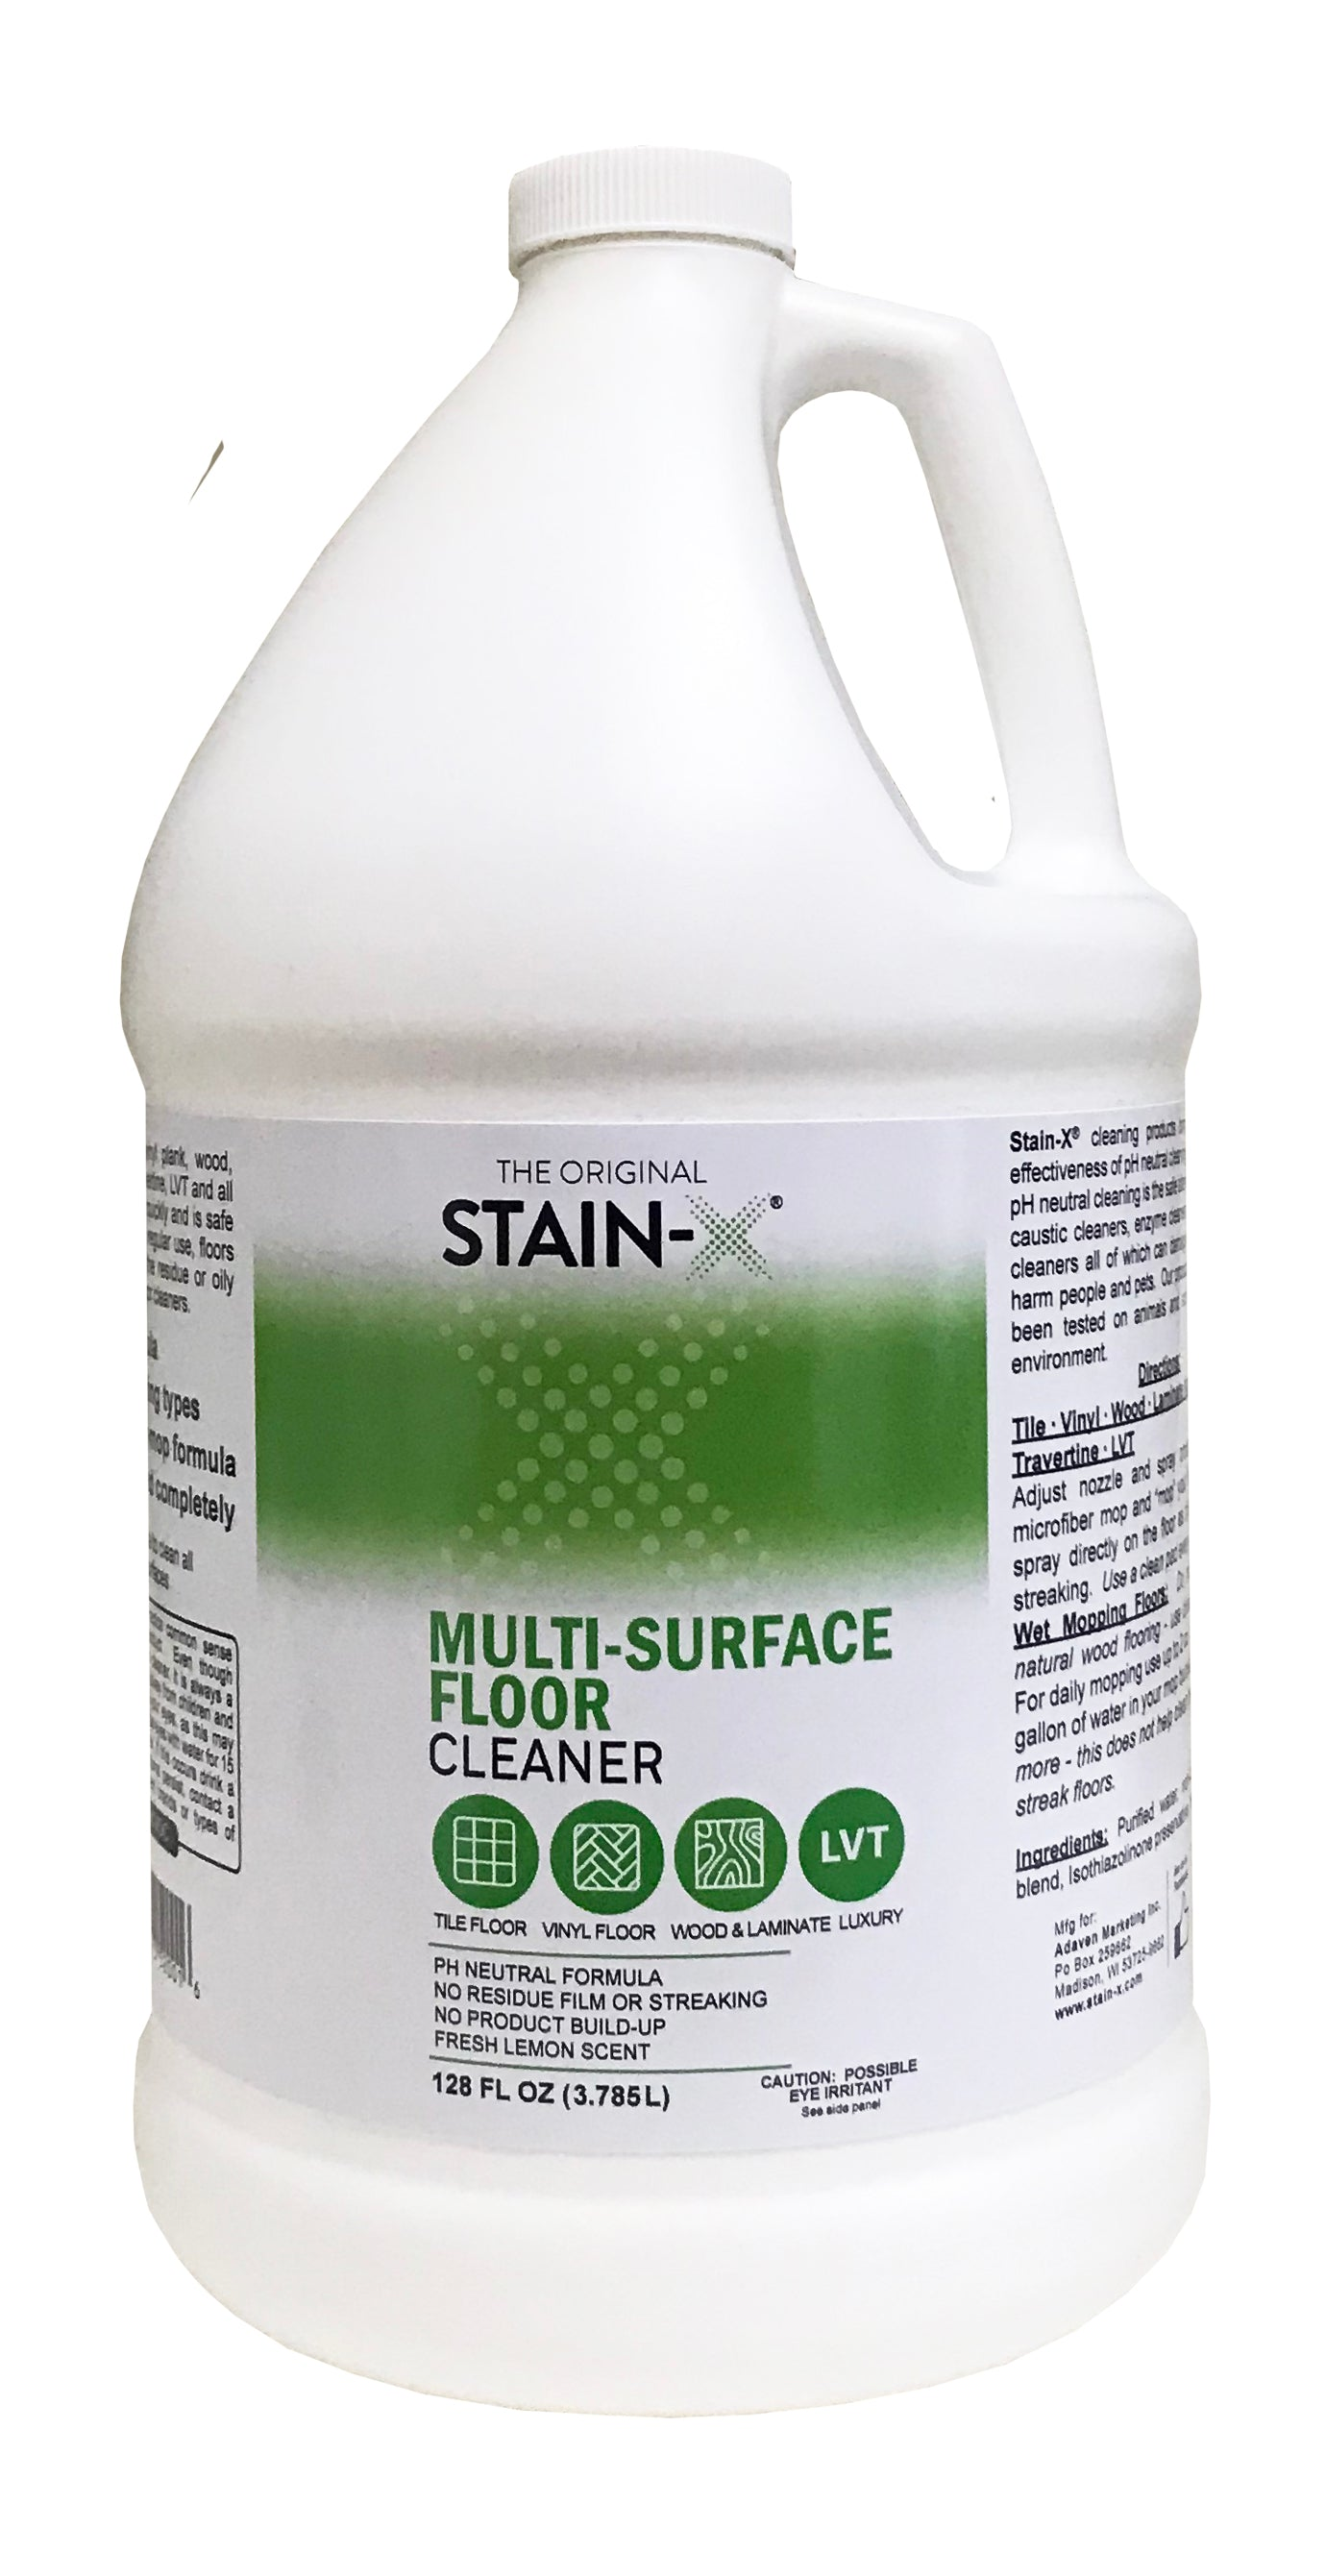 Stain-X Multi-Surface Floor Cleaner Gallon